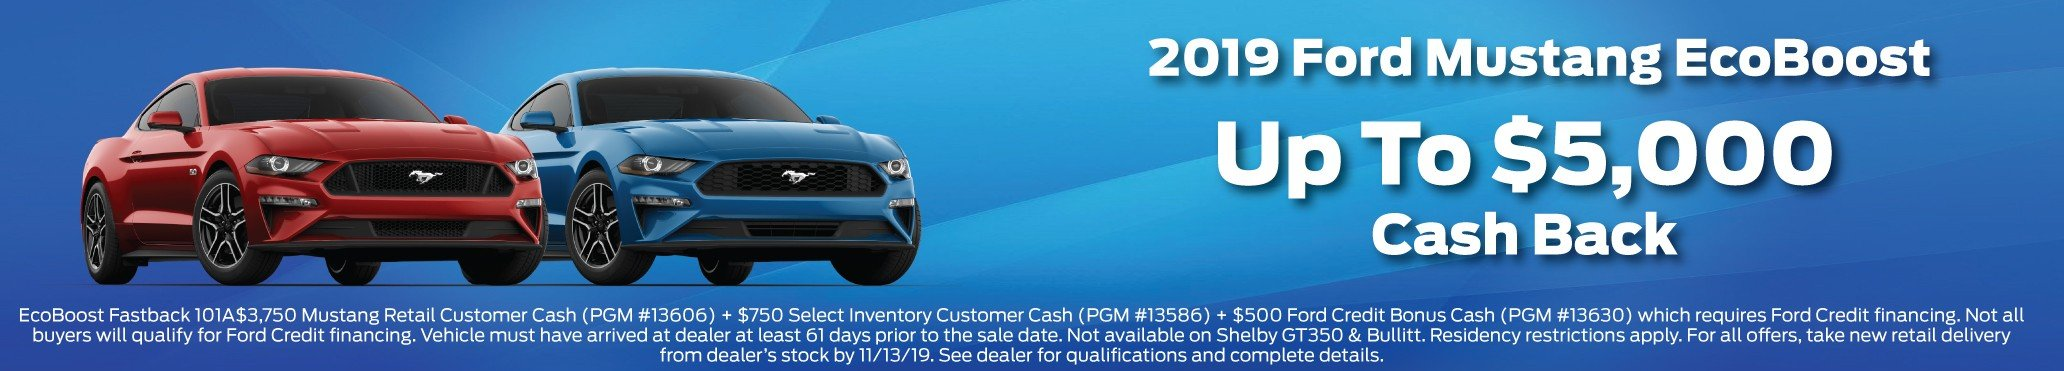 2019 Mustang Incentive 11-13-2019